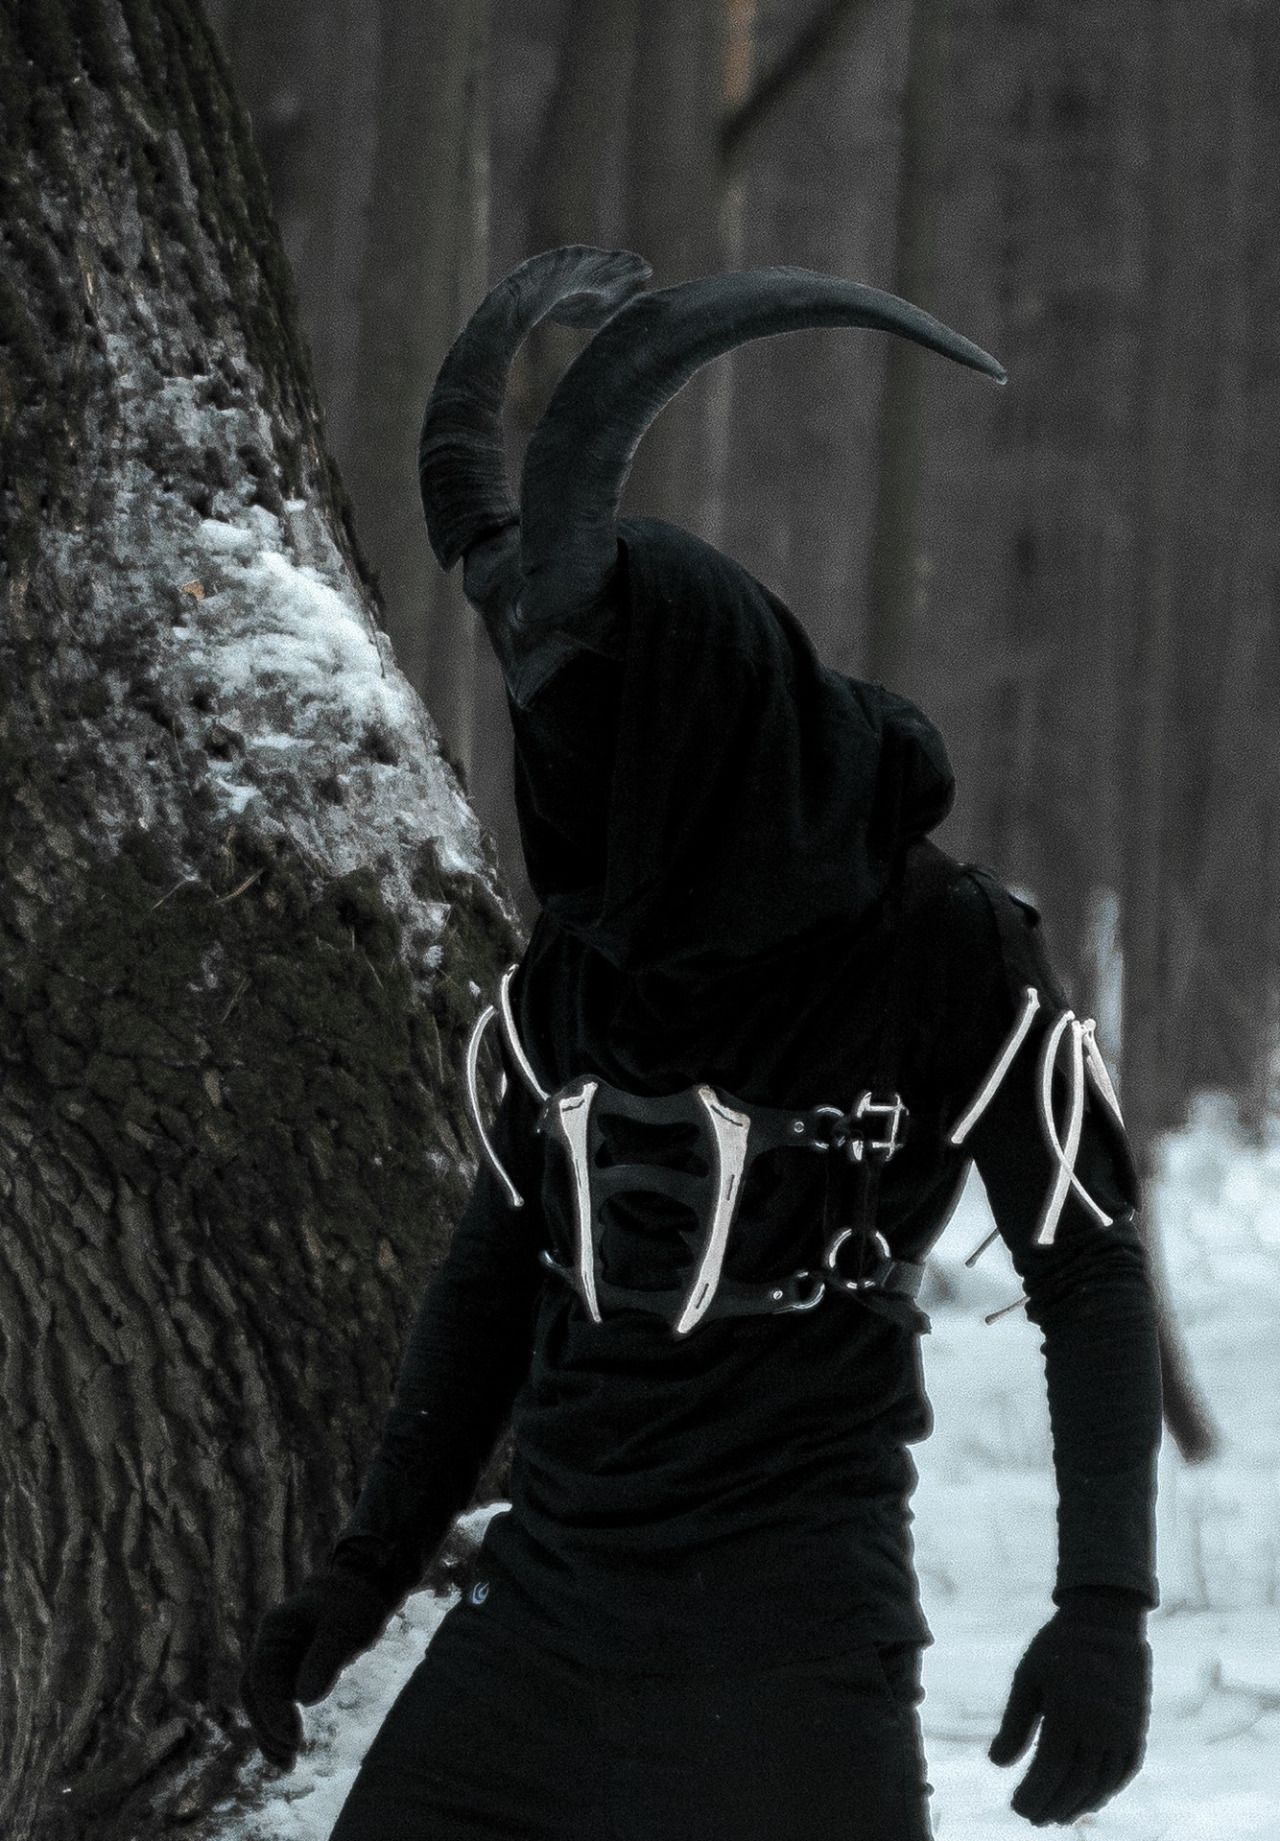 If you bought two of the dog horns and attached them to a hood with strap?